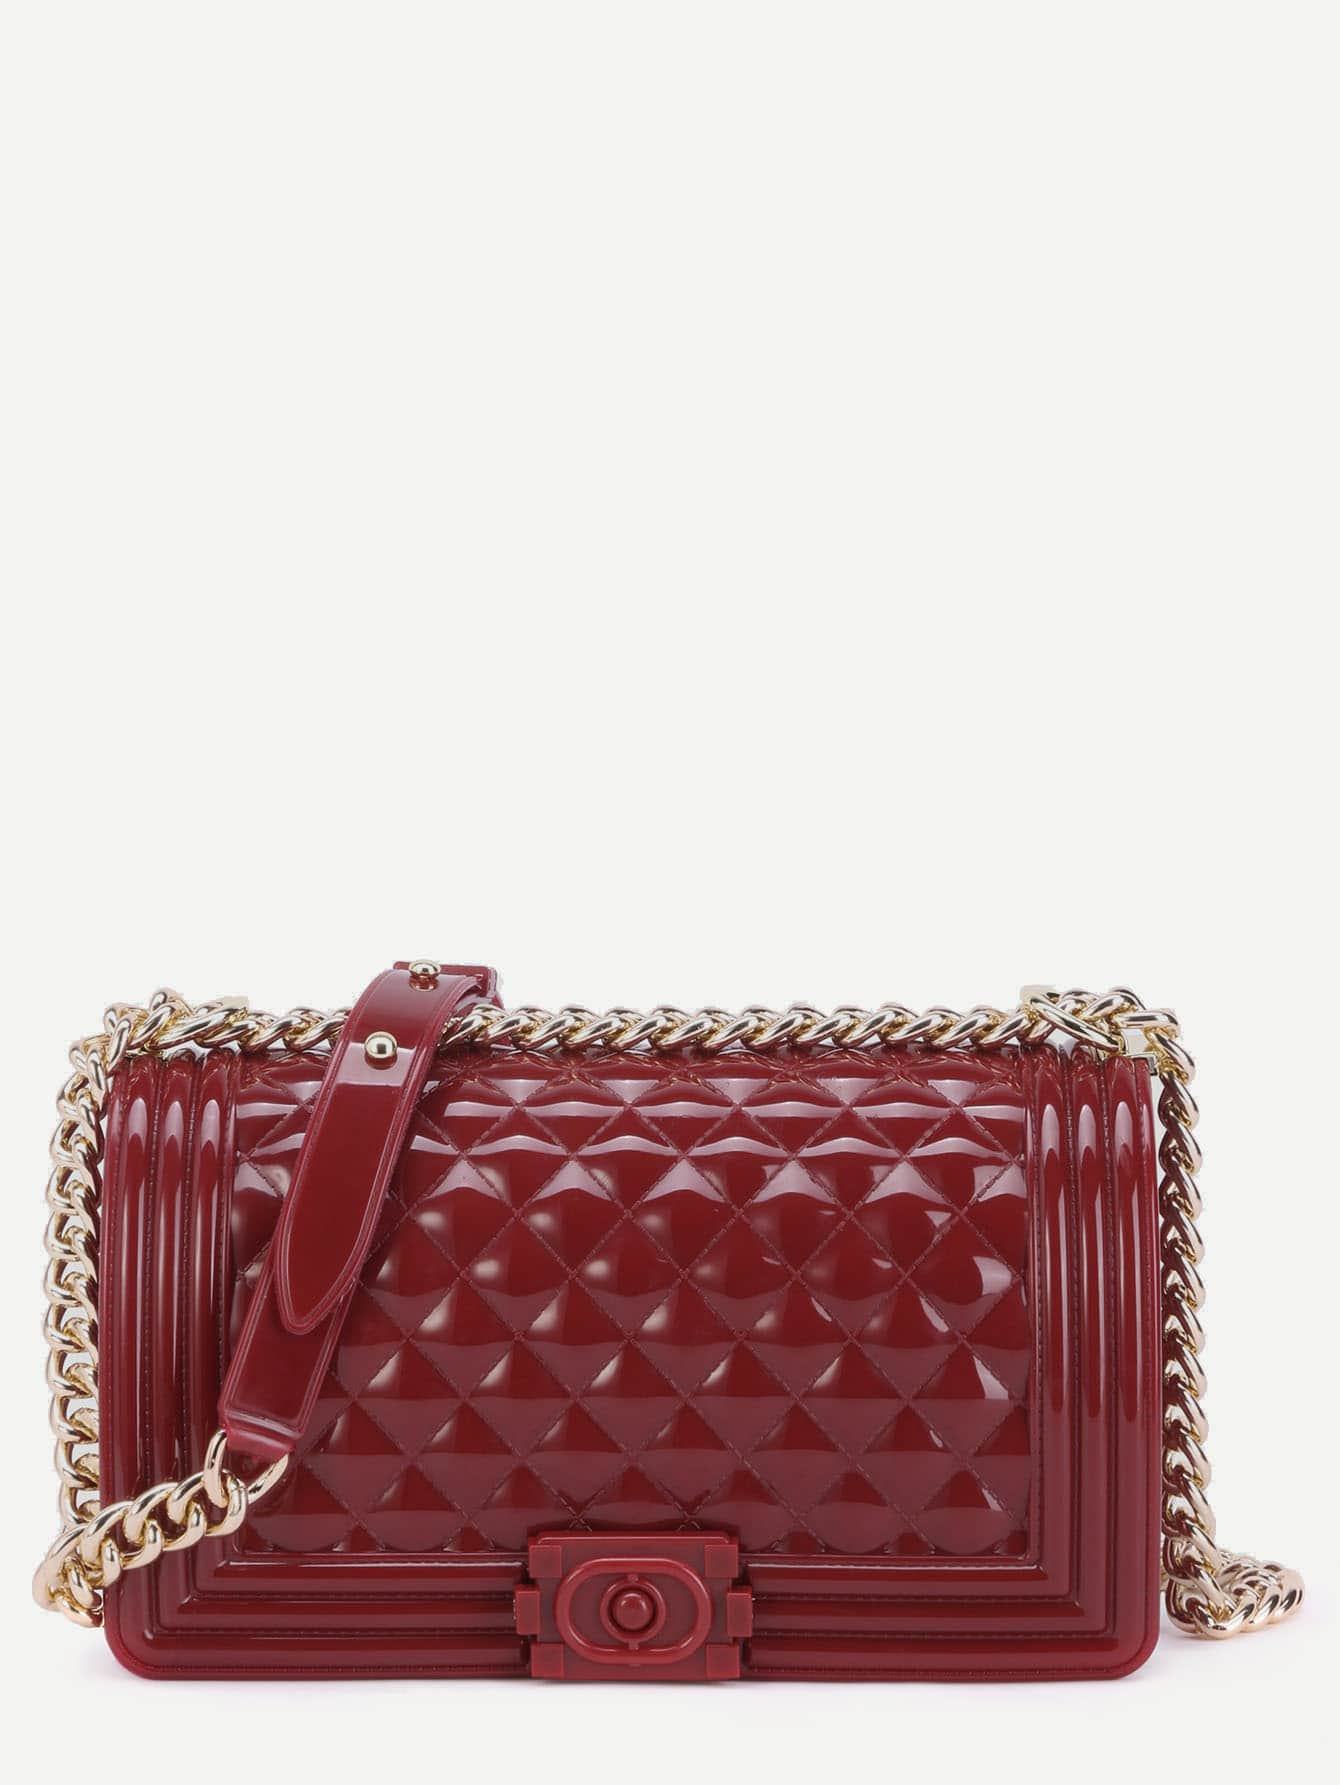 Mini Burgundy Quilted Flap Jelly Bag With ChainMini Burgundy Quilted Flap Jelly Bag With Chain<br><br>color: Burgundy<br>size: None